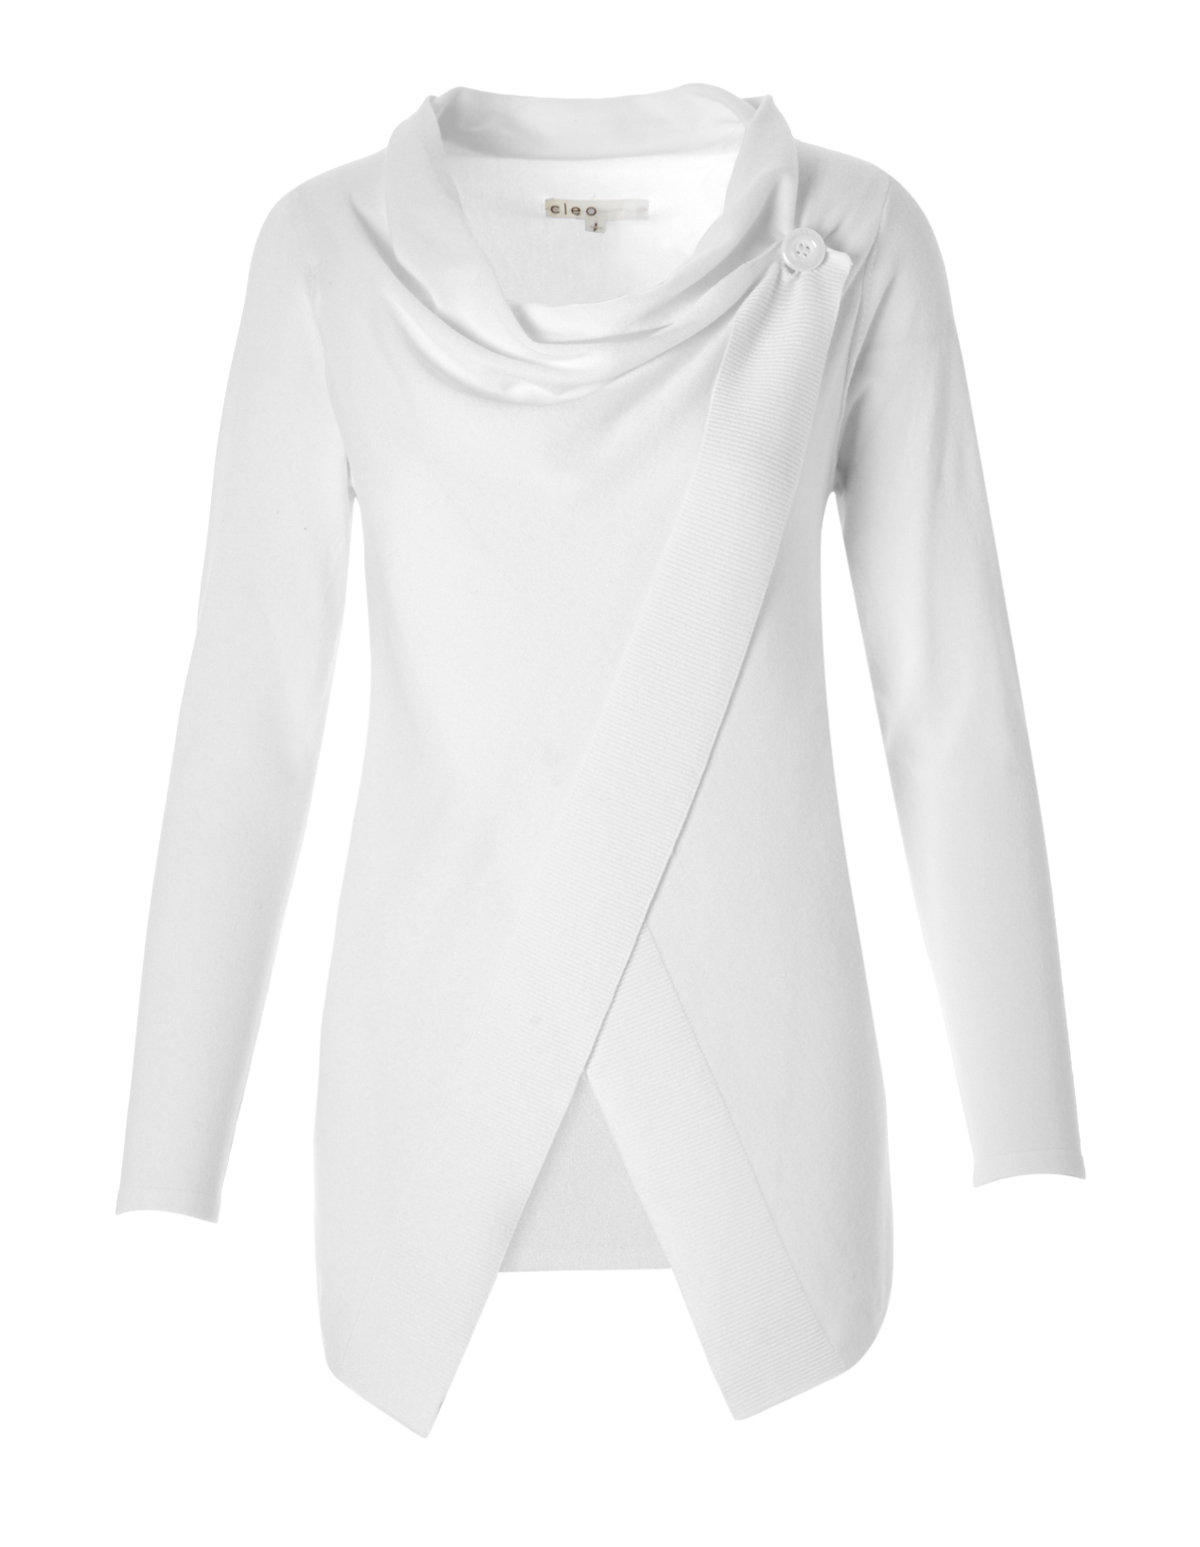 White Wrap Sweater | Cleo